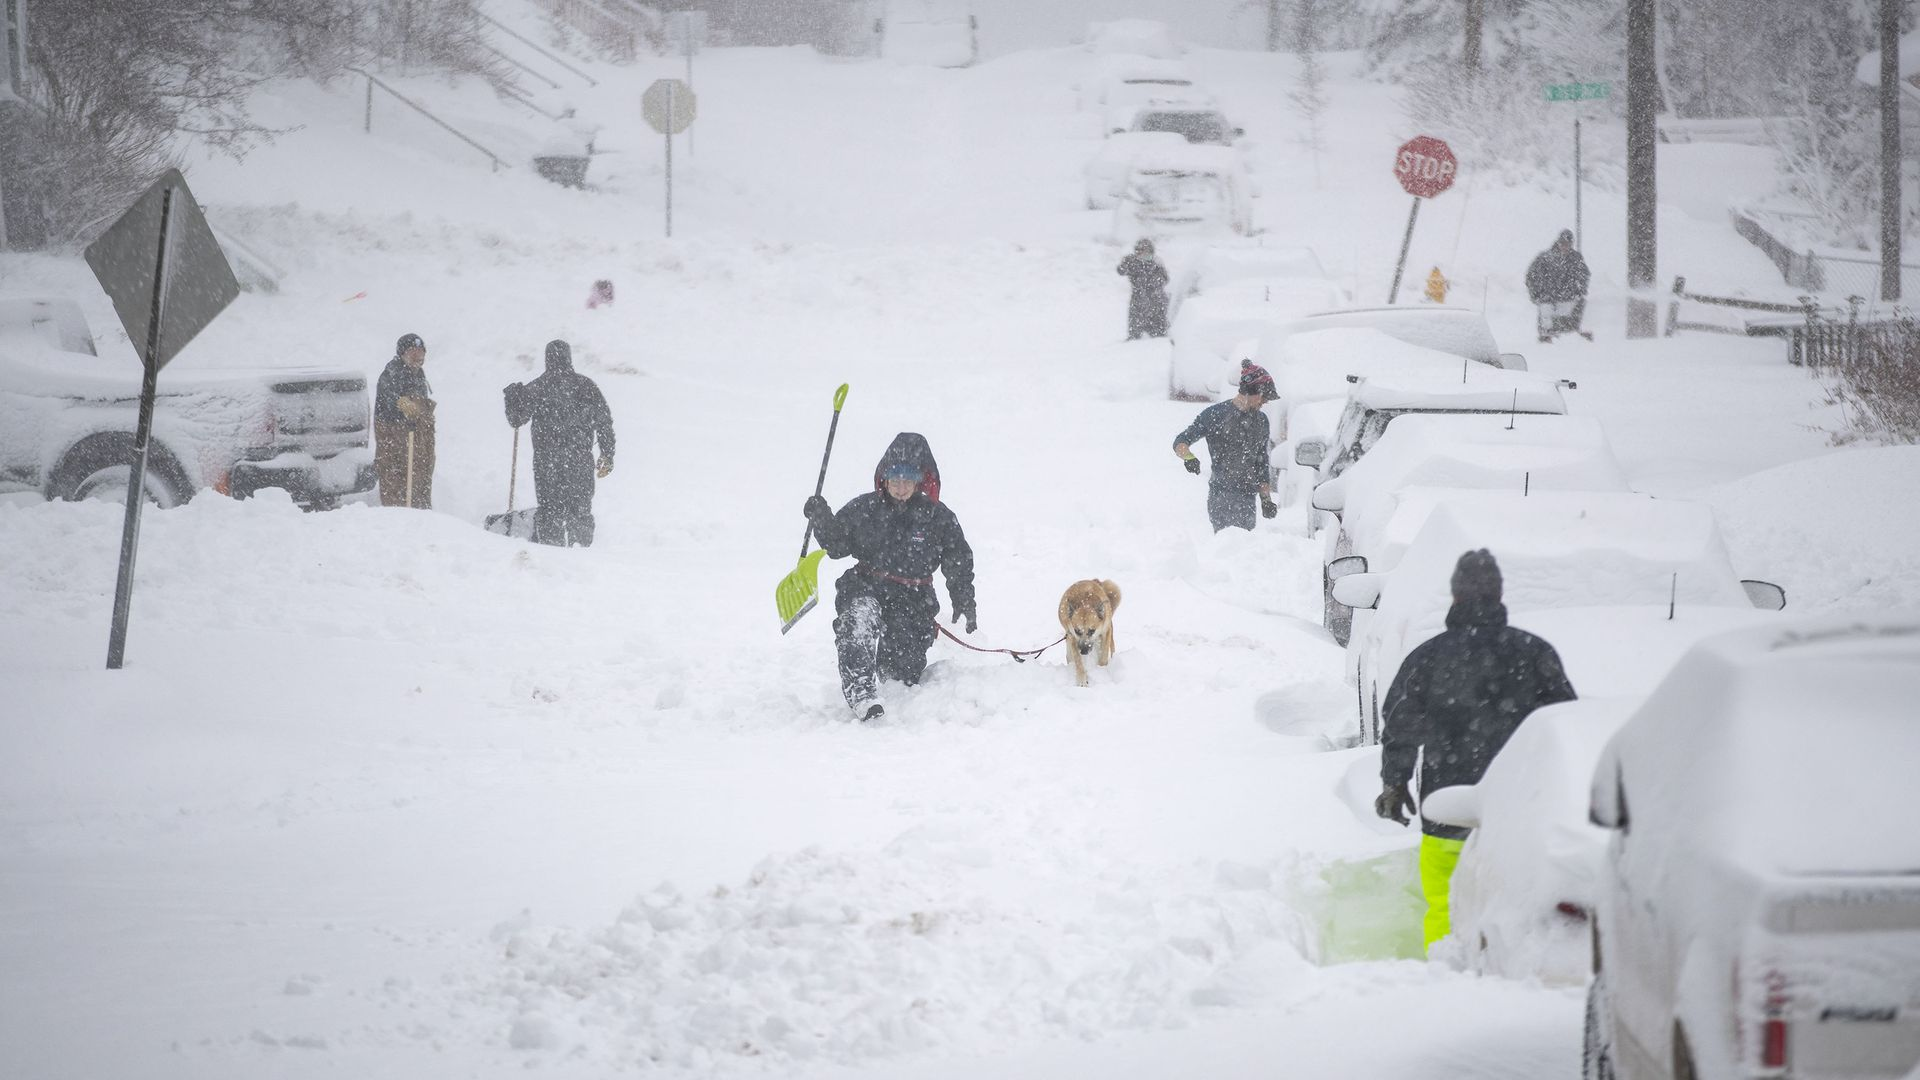 Neighbors worked together Sunday morning in an effort to clear out as much snow as possible from E. 8th St. in Duluth, Minnesota.